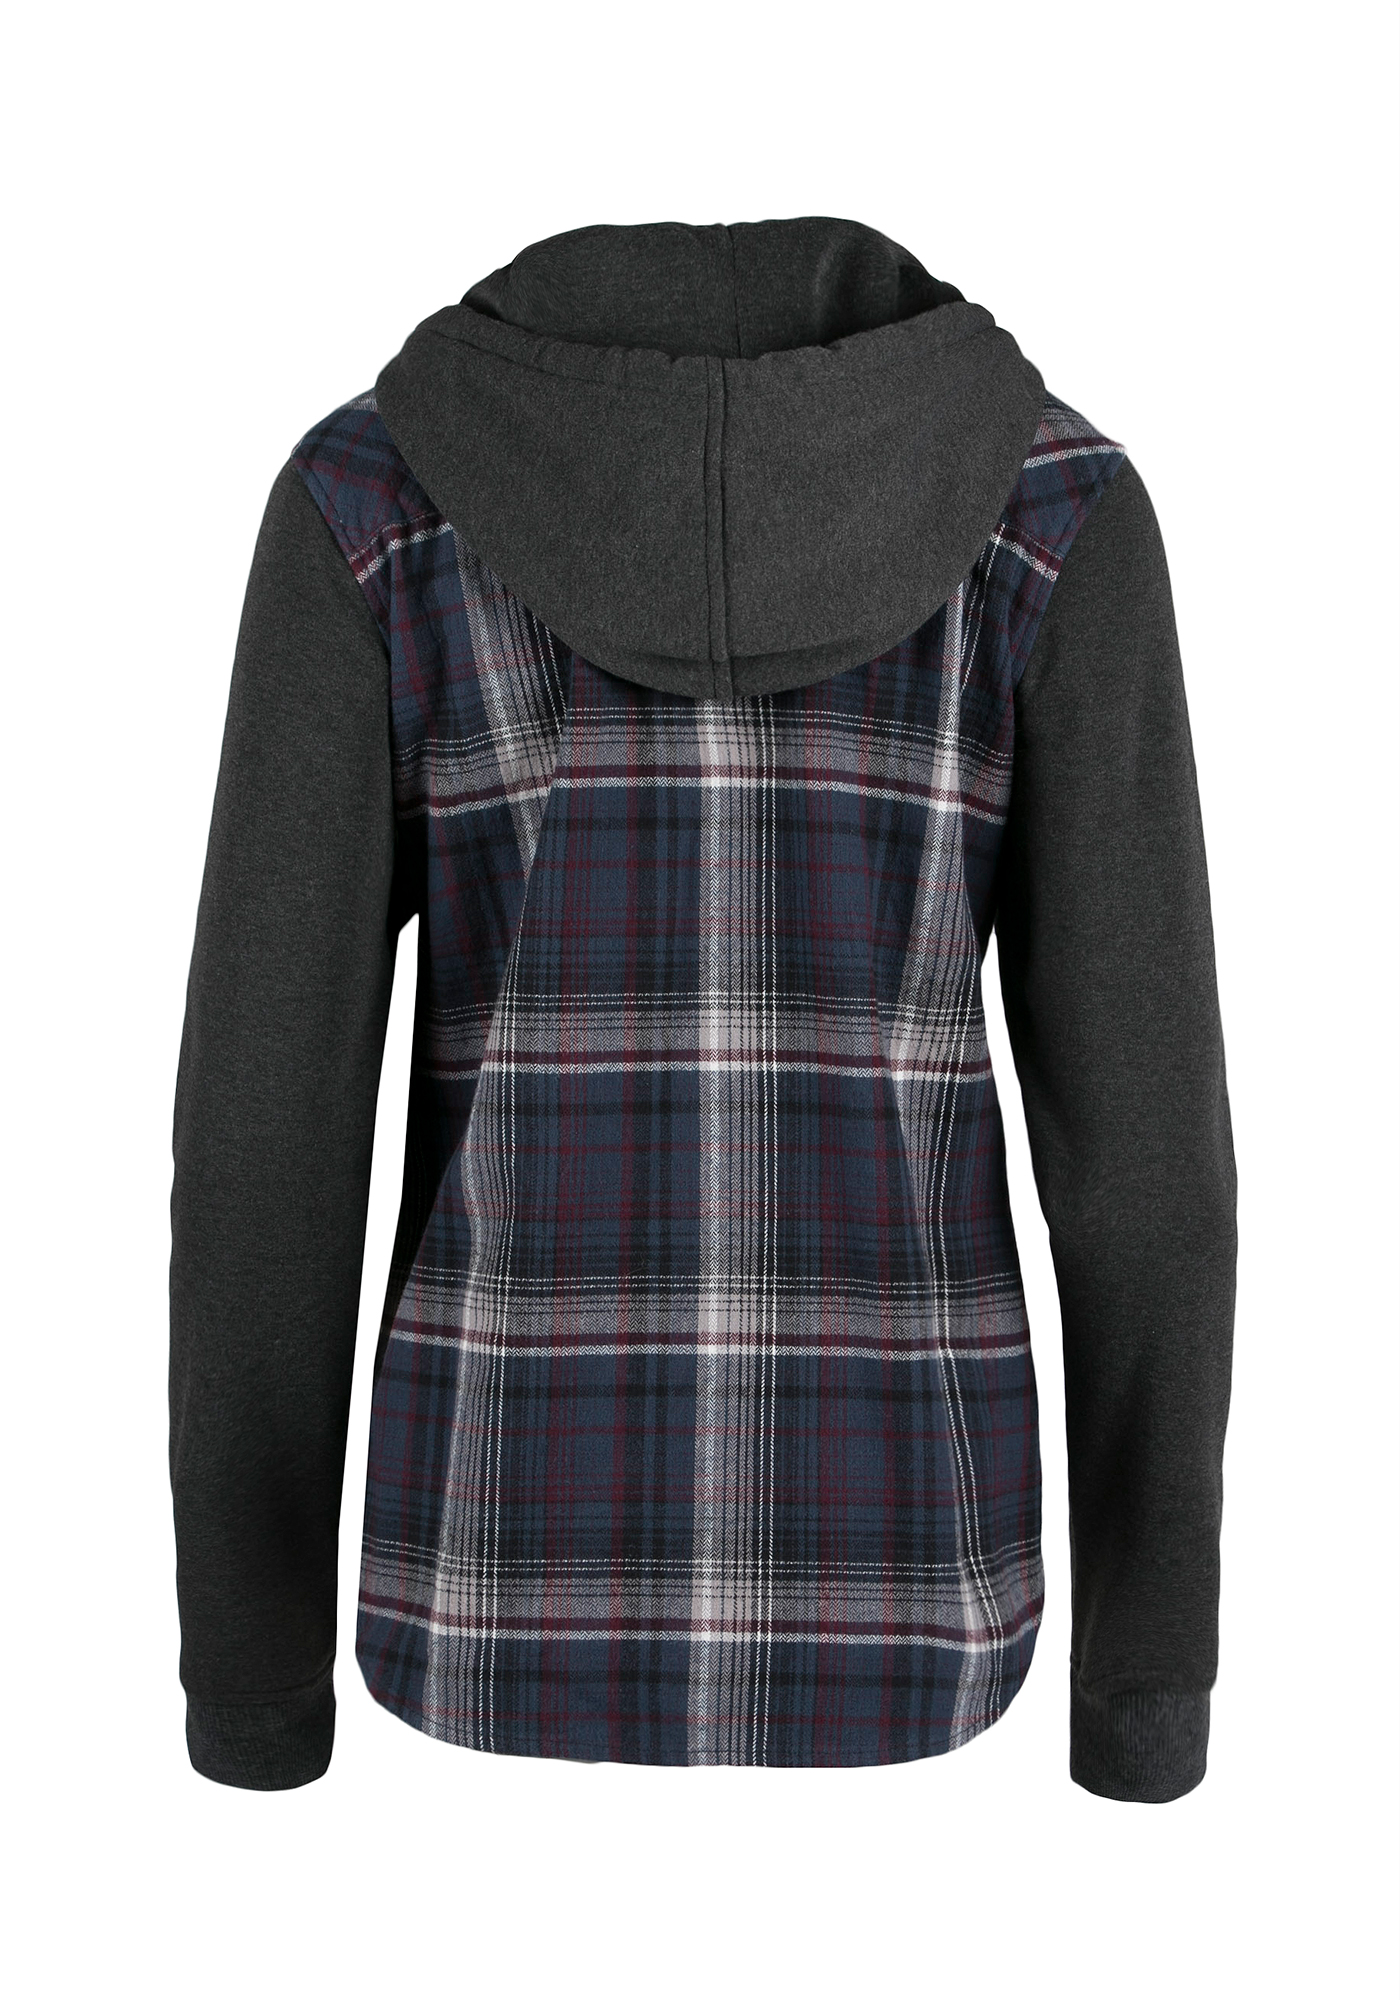 Bestselling New Women Coat Plaid Shirts Long Sleeve Detachable Drawstring Hooded Casual Coat. Sold by Bestselling. Alisa Pan Women's Retro Asymetrical Button Up Summer Casual Plaid Shirt Dress for Women Sold by Ever Pretty. $ $ Burnside B Women's Long Sleeve Plaid Shirt Red,3X.